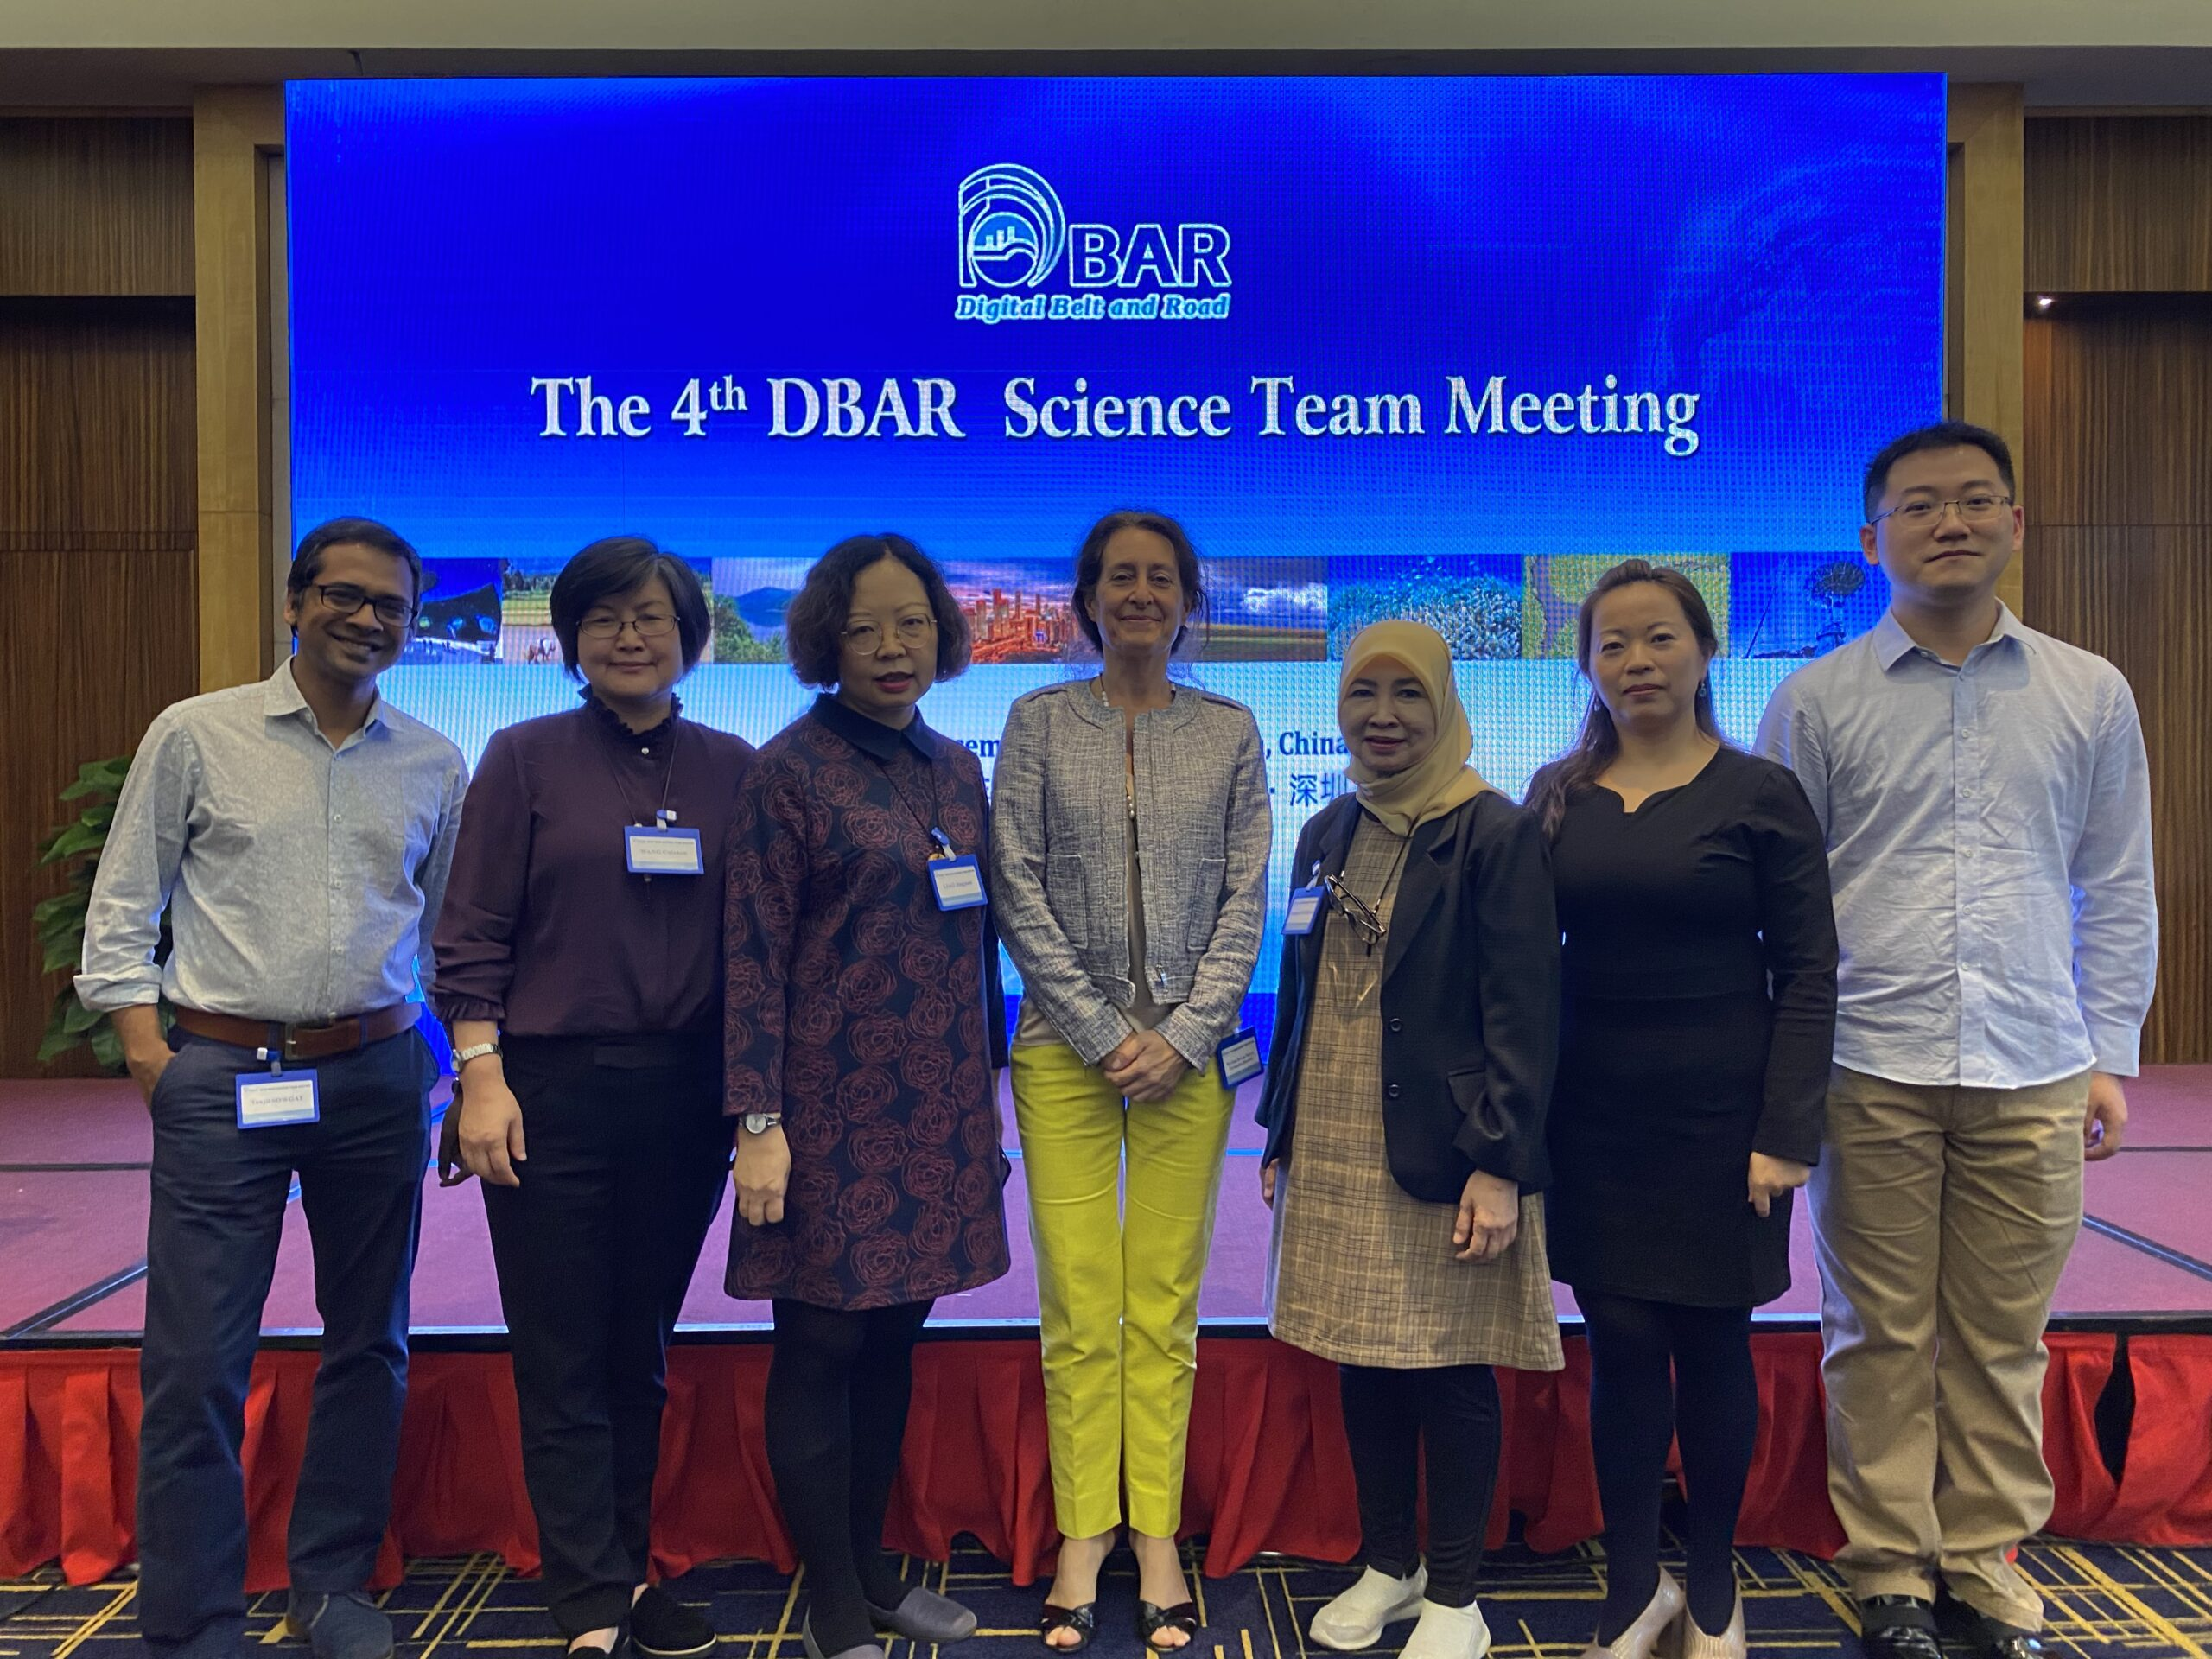 DBAR Science Team Meeting 2019